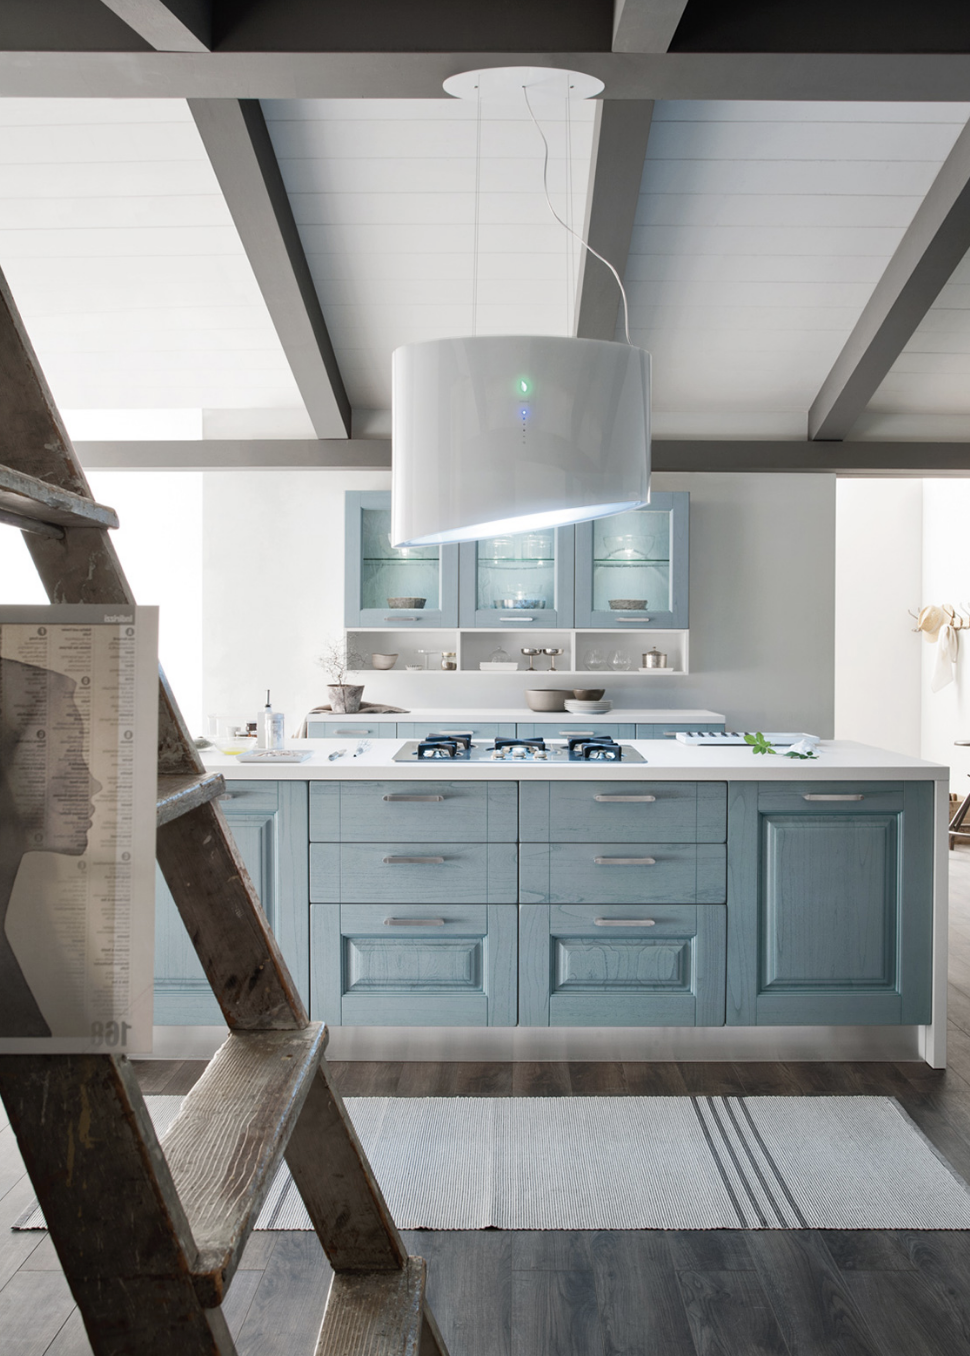 BIEFFE Kitchens. OLYMPIA Collection | Classic kitchens with a strong ...